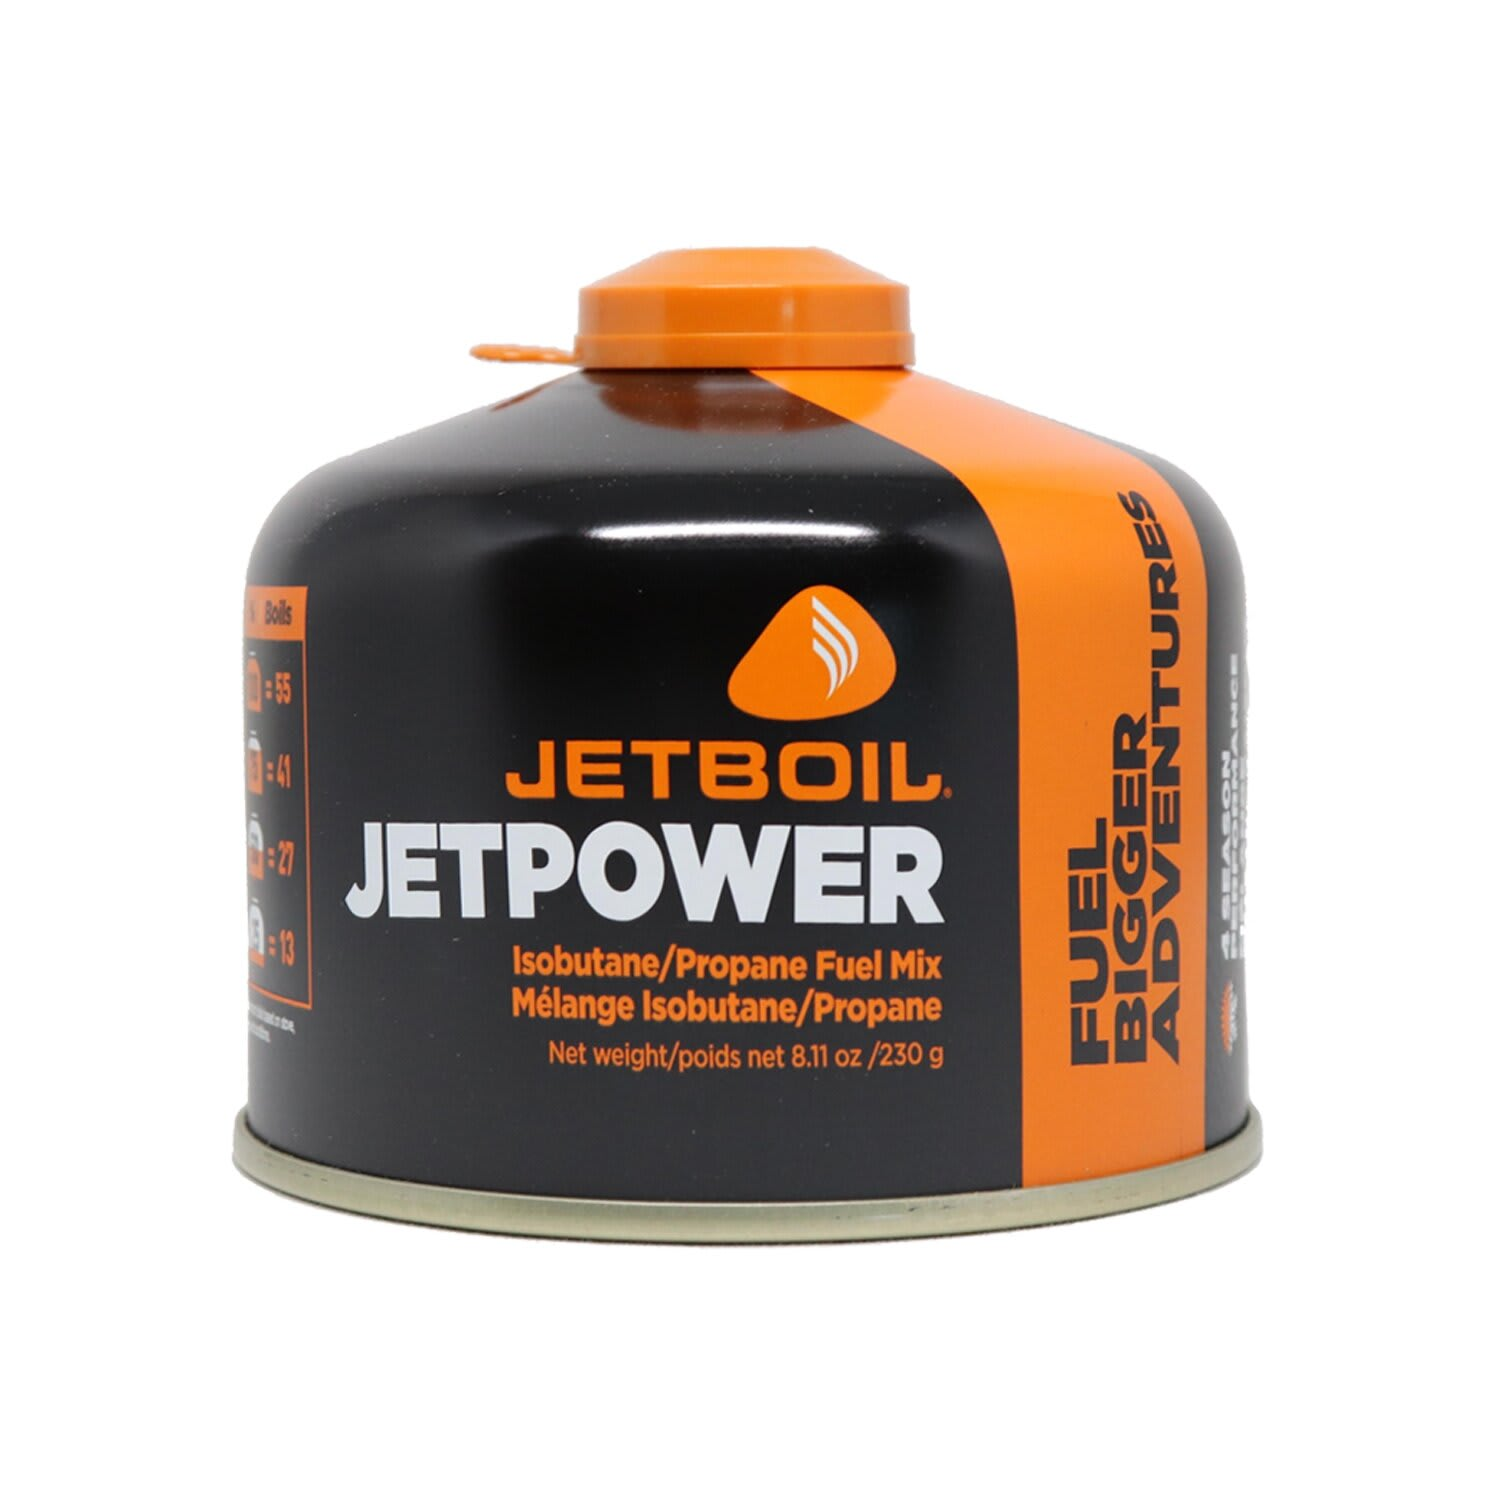 Jetboil Jetpower Fuel 230g Canister.